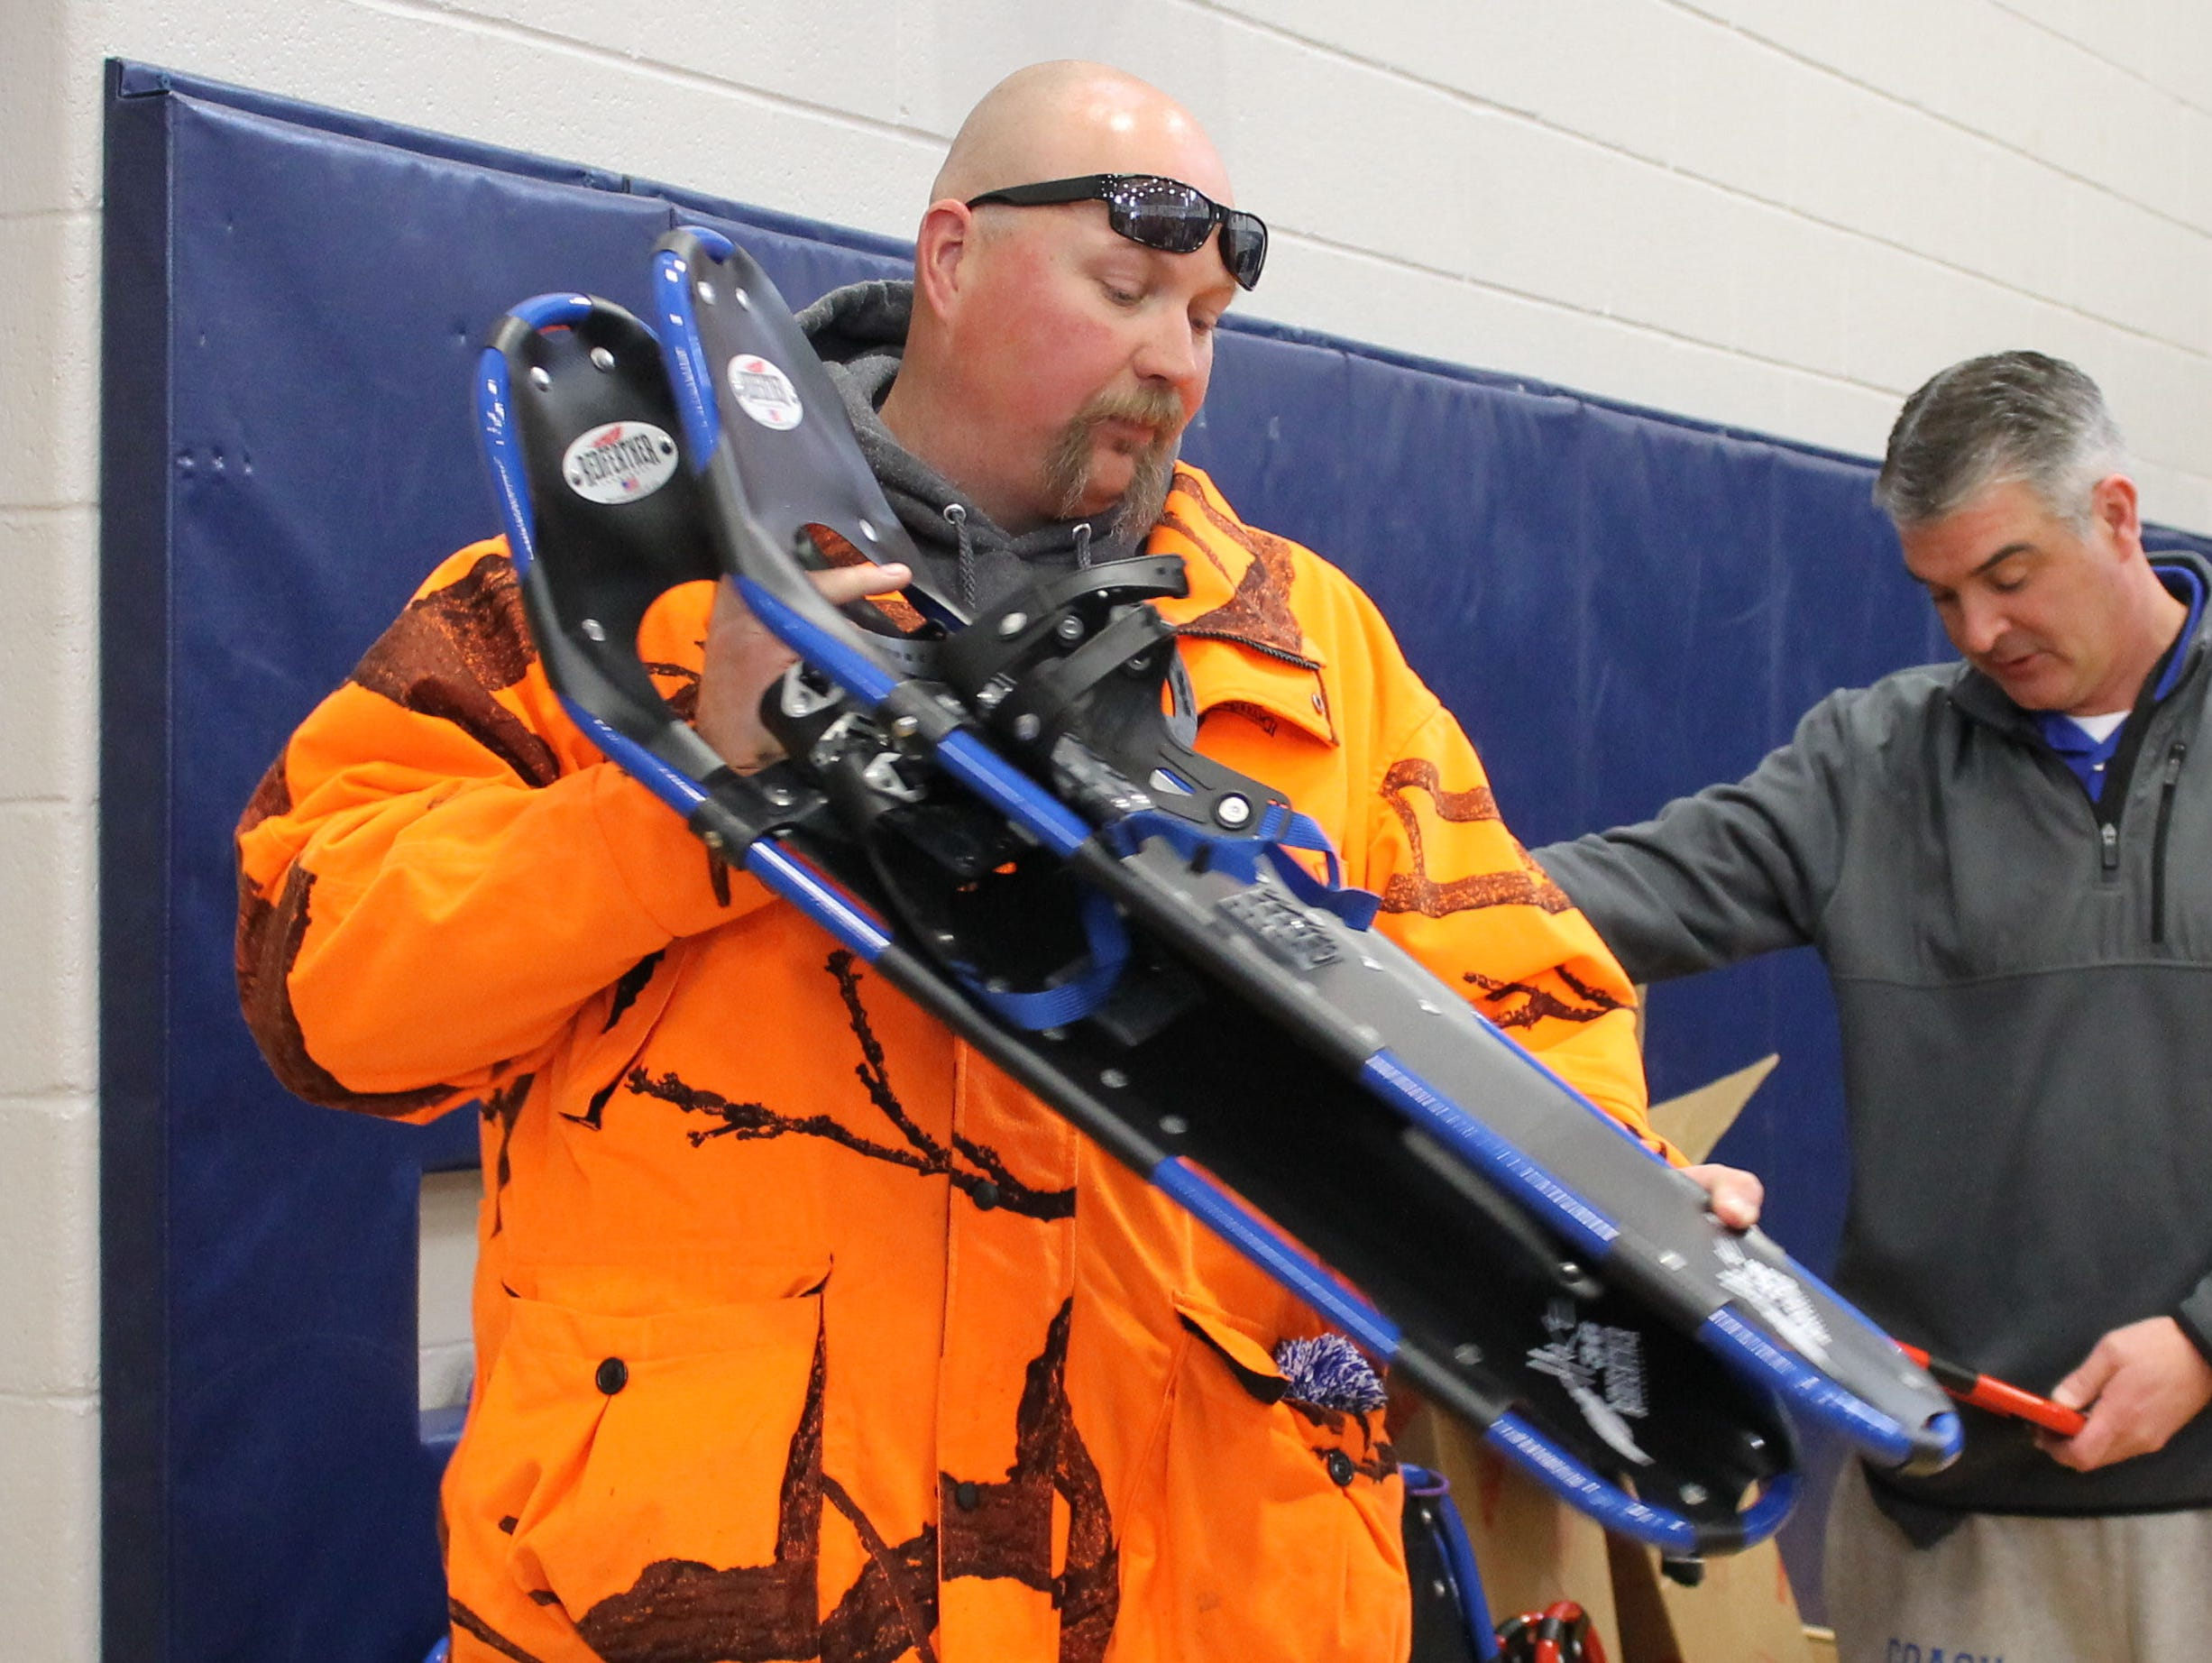 Millbrook High School teacher Shawn Stoliker, center, inspects a snowshoe for student use within the school's gym.